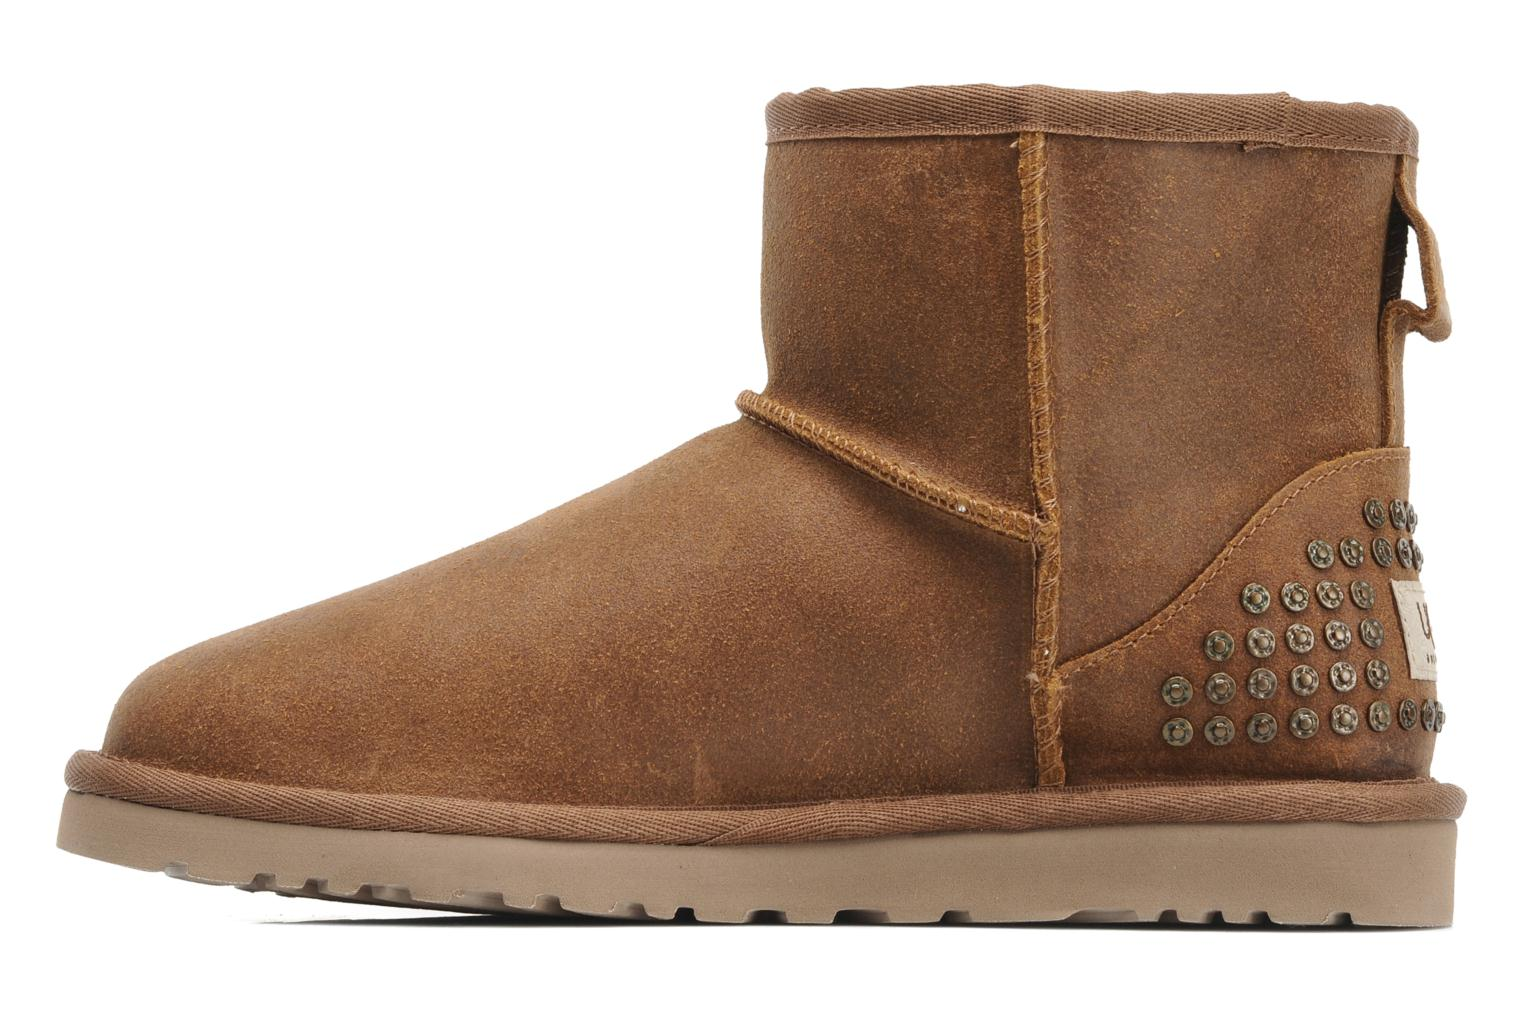 ugg boots classic mini leather studs enkellaarsjes